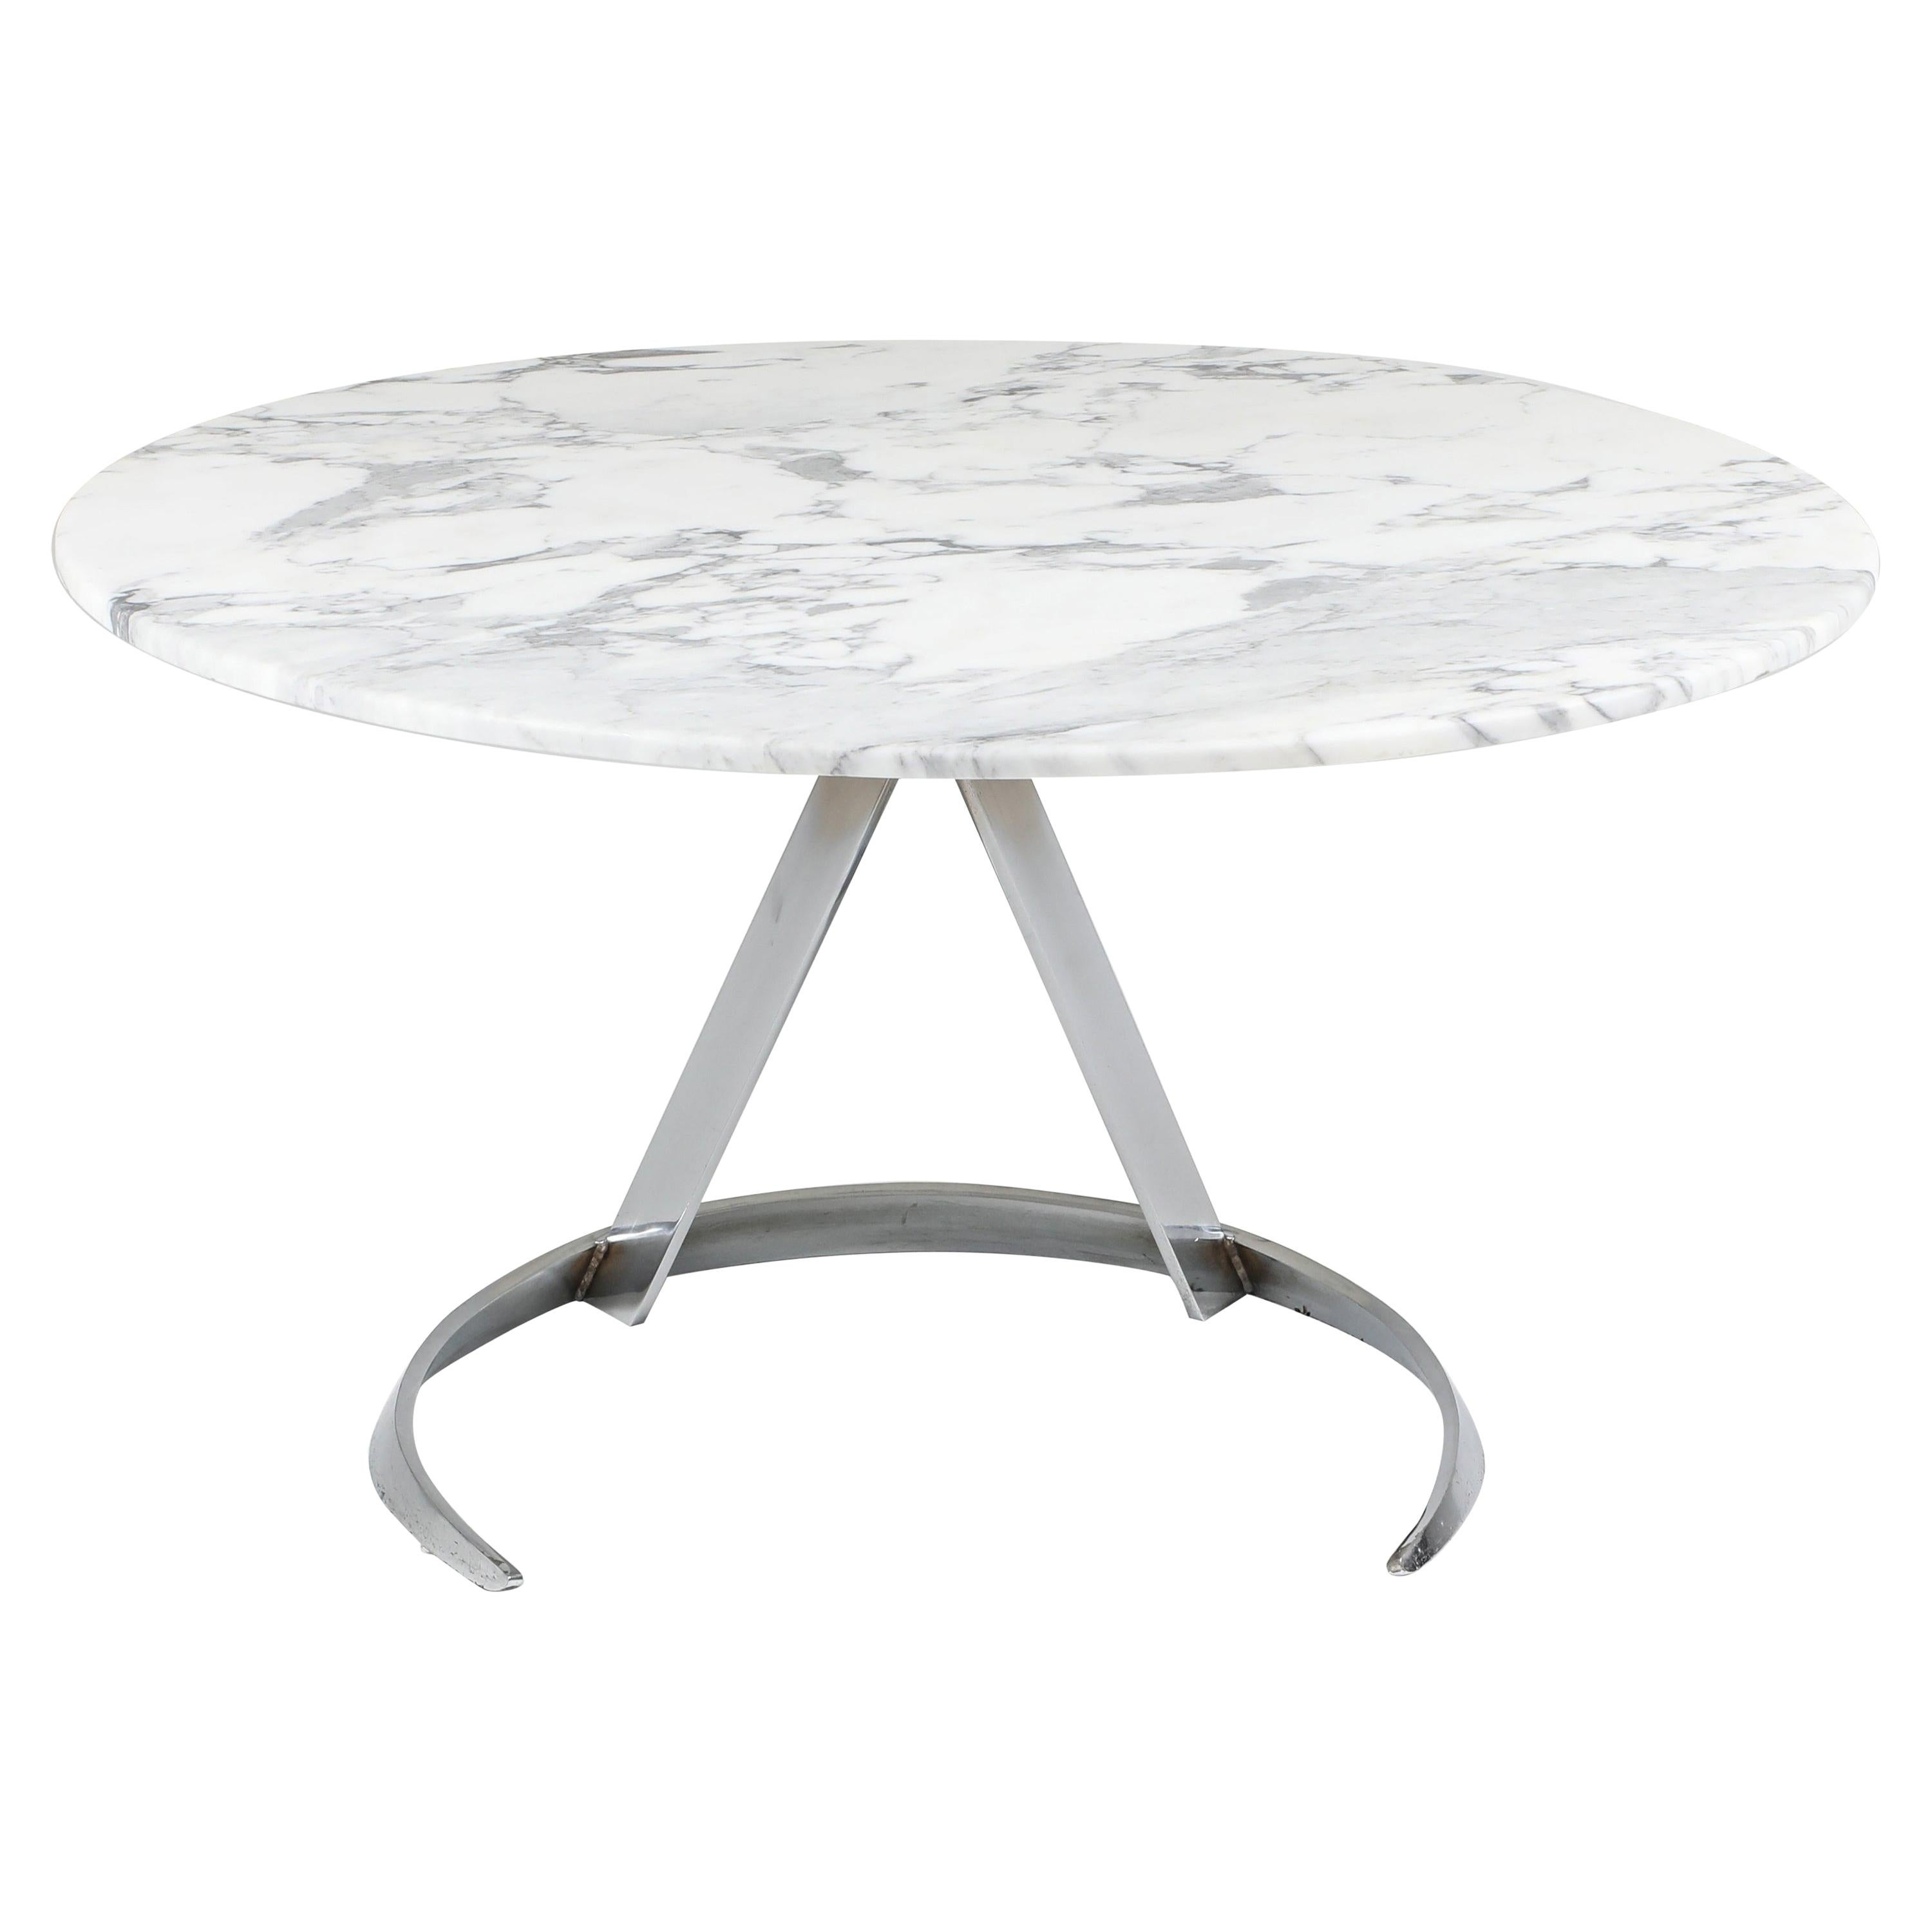 Marble and Chrome Boris Tabaccof Dining Room Table